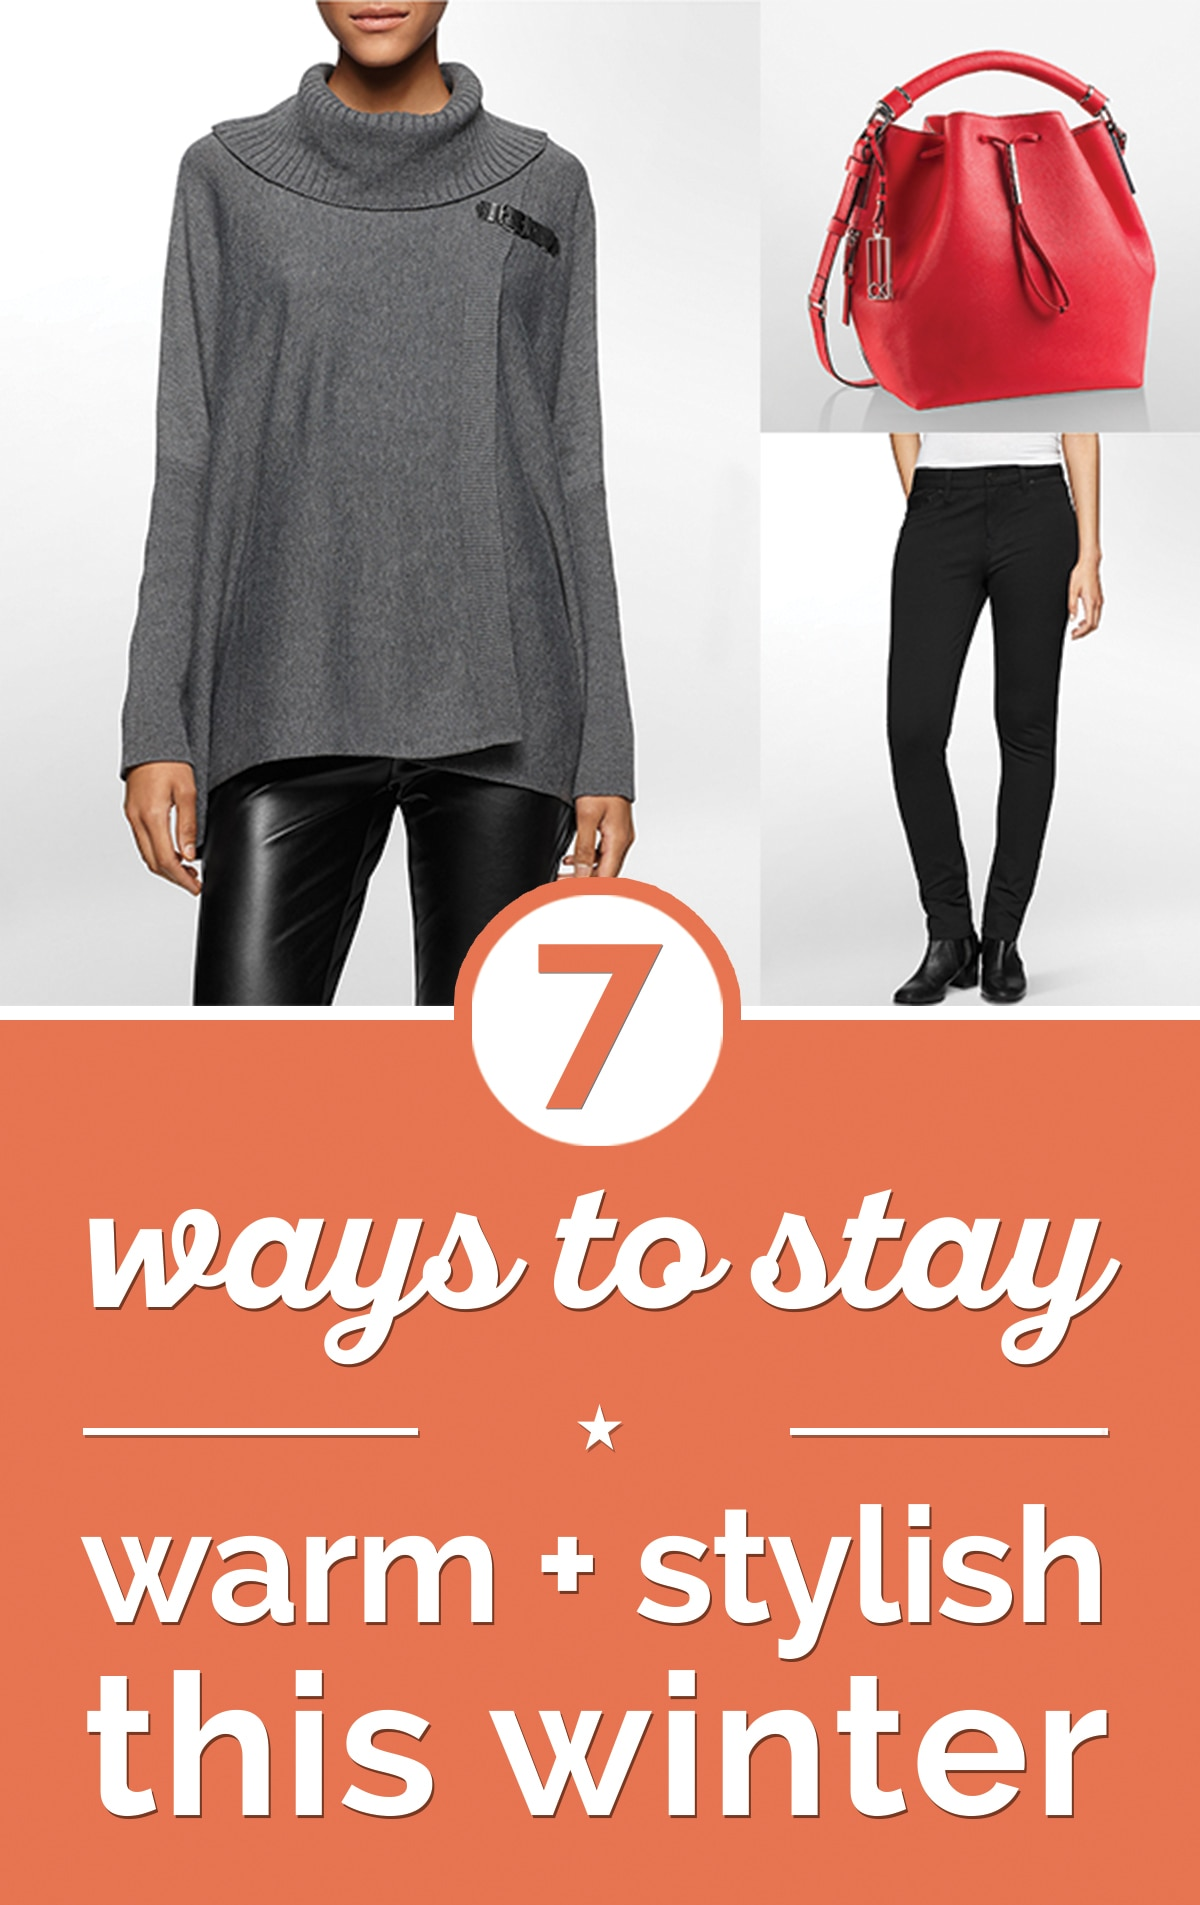 Winter Style: 7 Ways to Stay Warm + Stylish This Winter | thegoodstuff